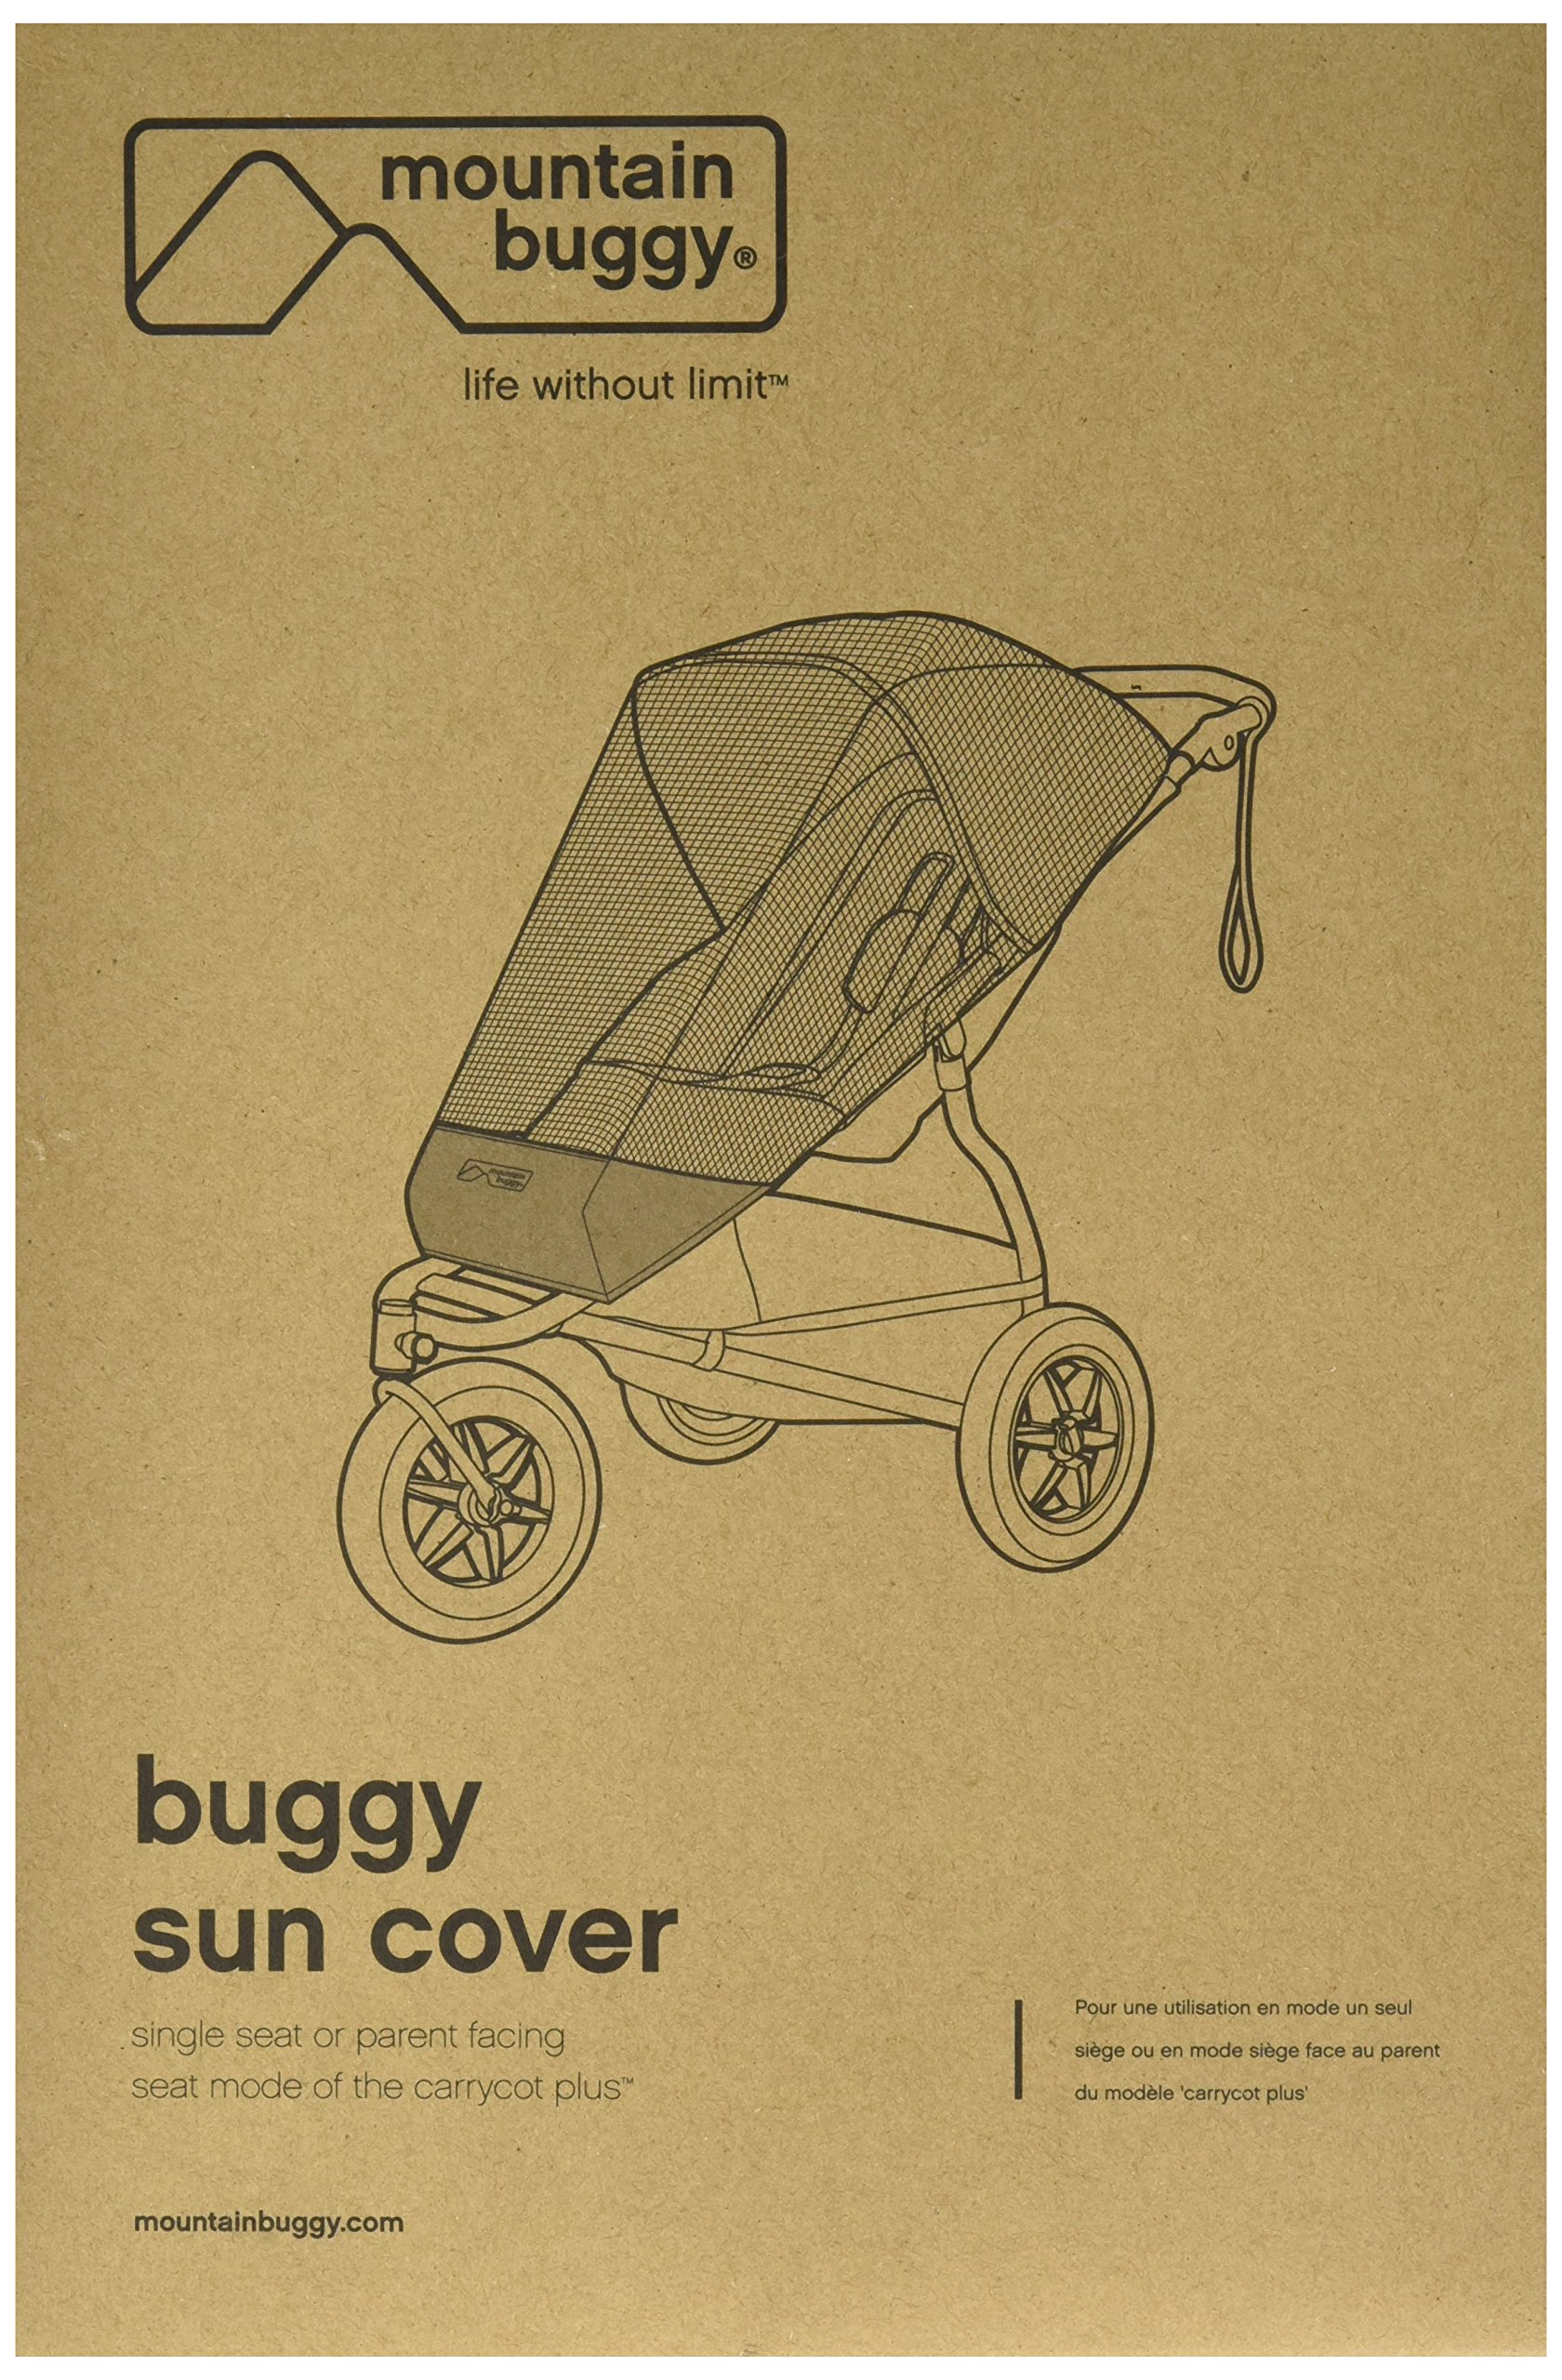 Mountain Buggy Sun Mesh for Urban Jungle and Terrain Mountain Buggy Shelters baby from  light wind, bugs and light Durable and hard wearing Easy to access child with zip opening front 1